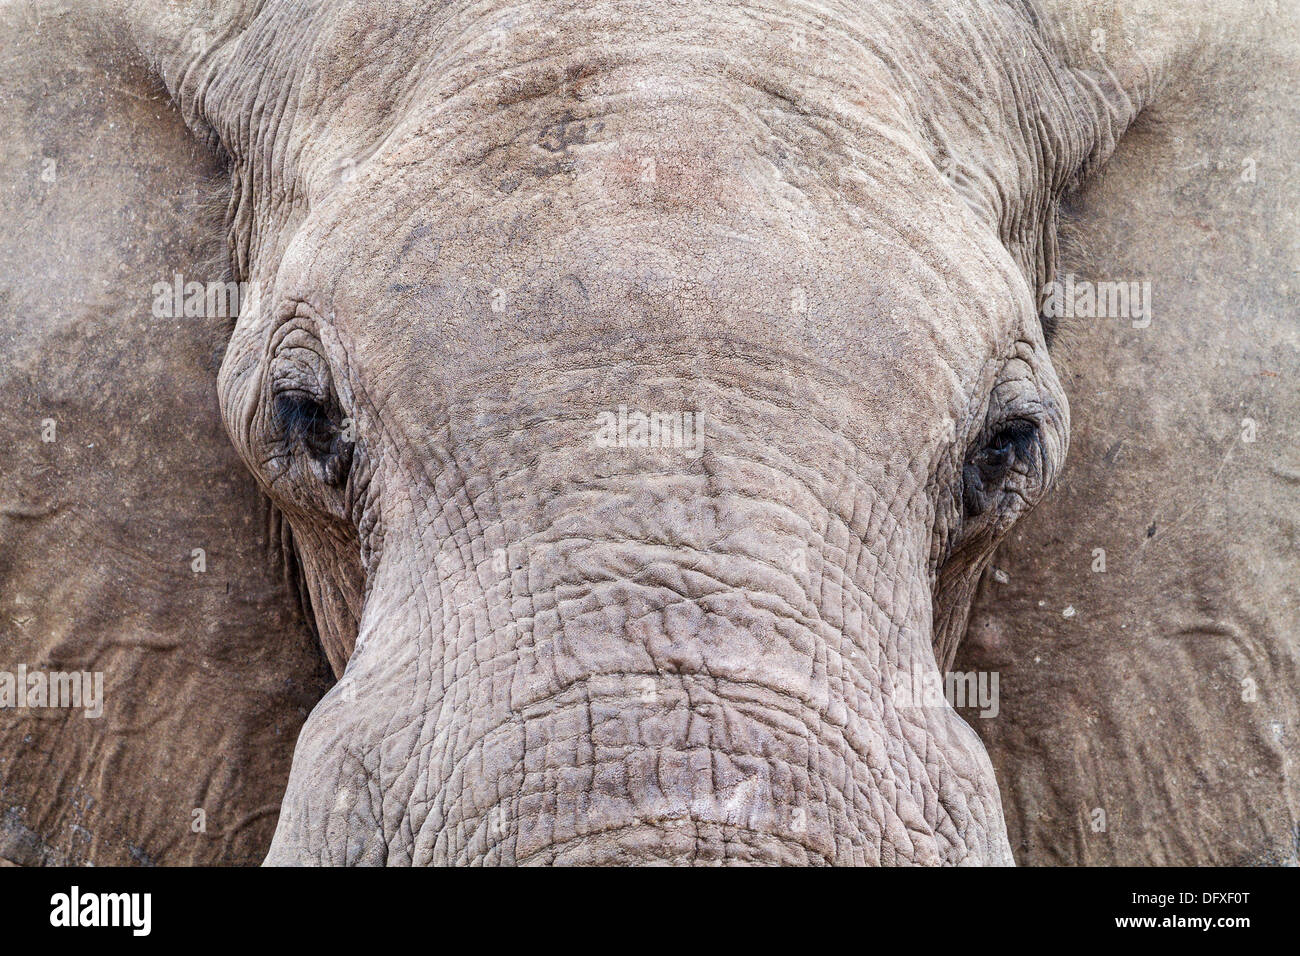 Close-up of an African Elephant (Loxodonta africana) drinking at a water hole, Botswana - Stock Image